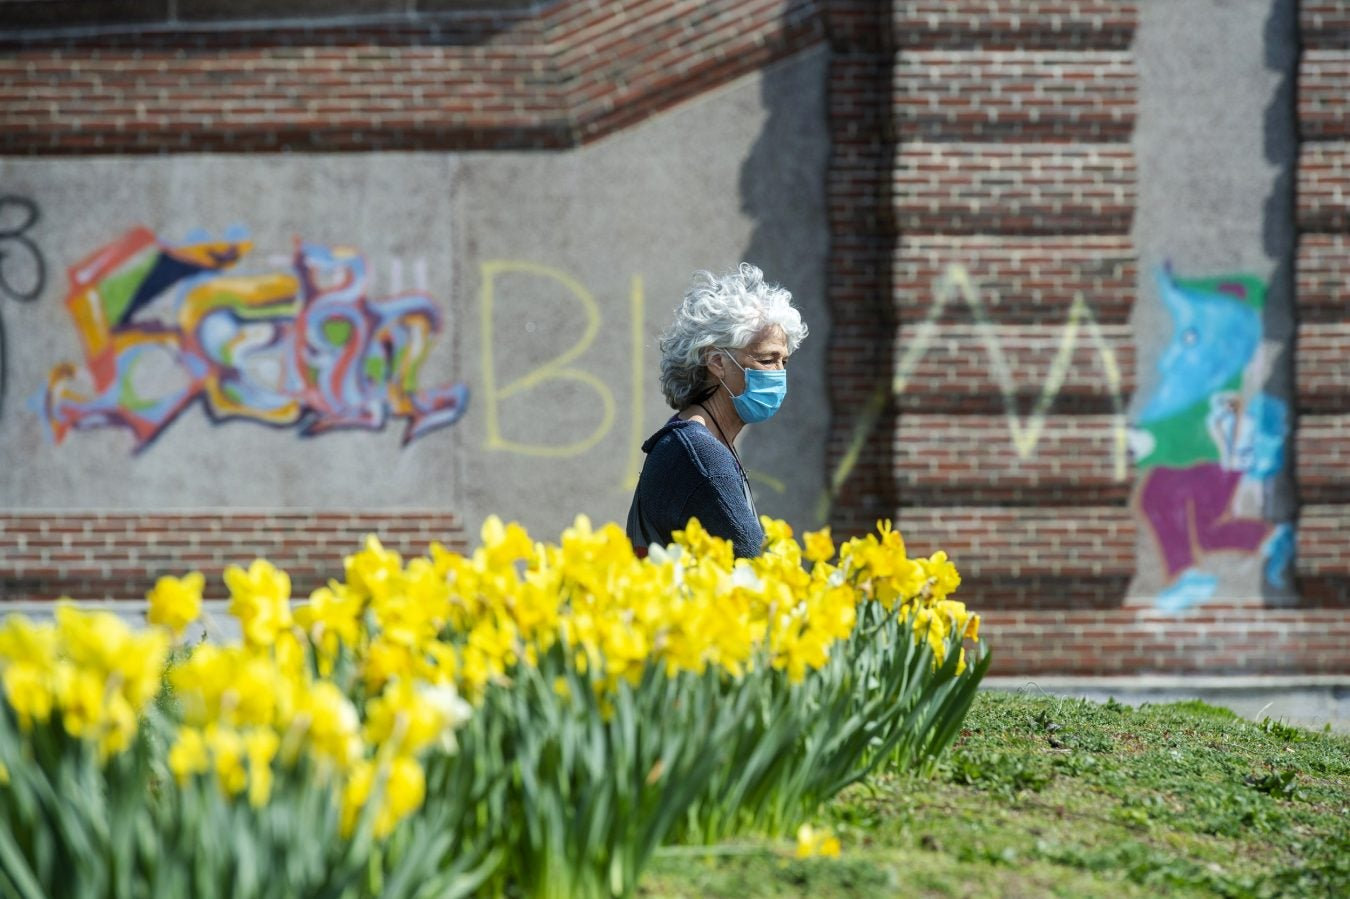 Cambridge resident Amy Rugel soaks up some sun by a row of daffodils at the Anderson Memorial Bridge.